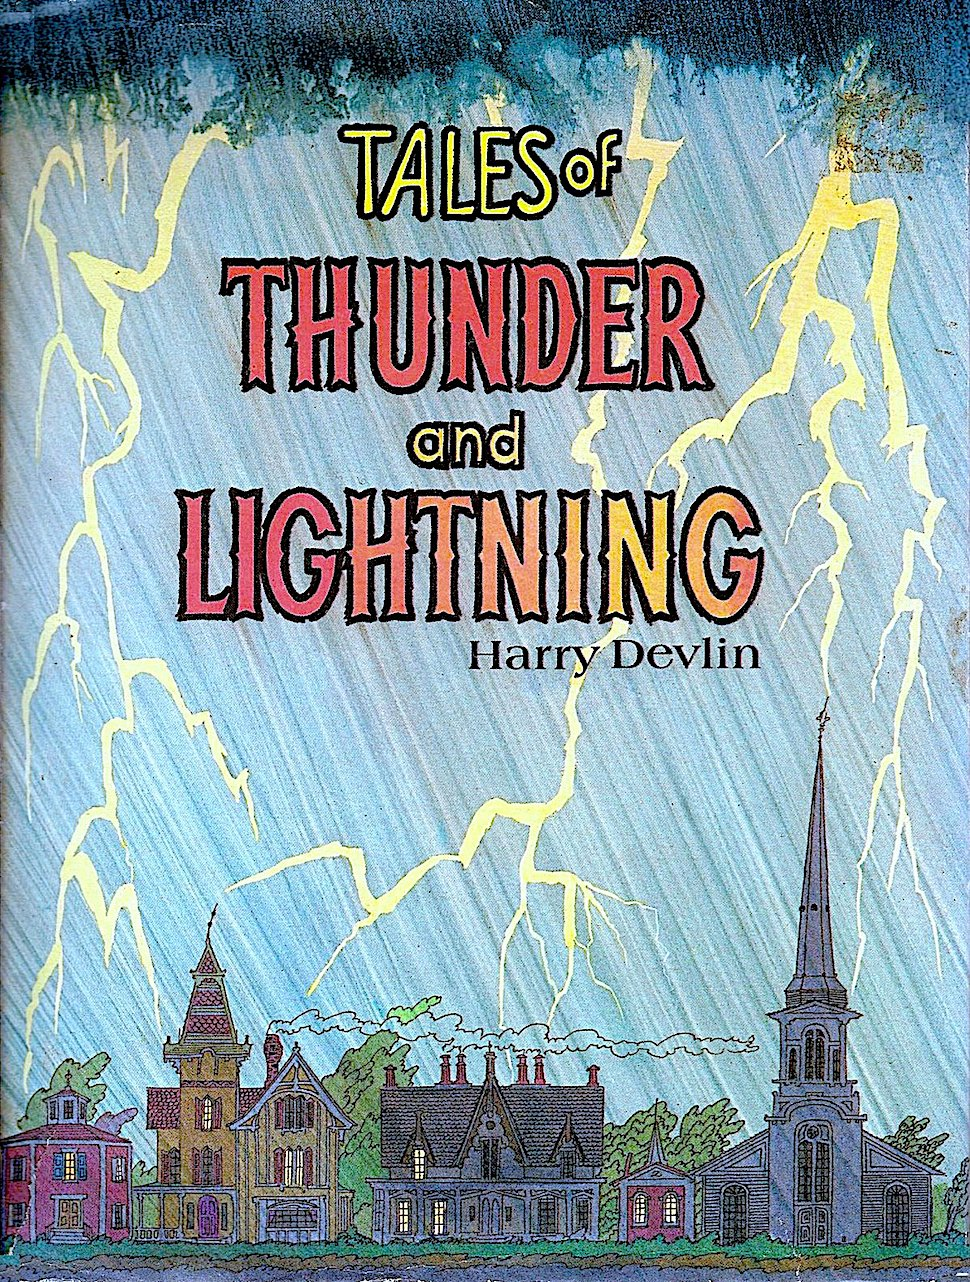 Tales of thunder and lightning by Harry Devlin 1975